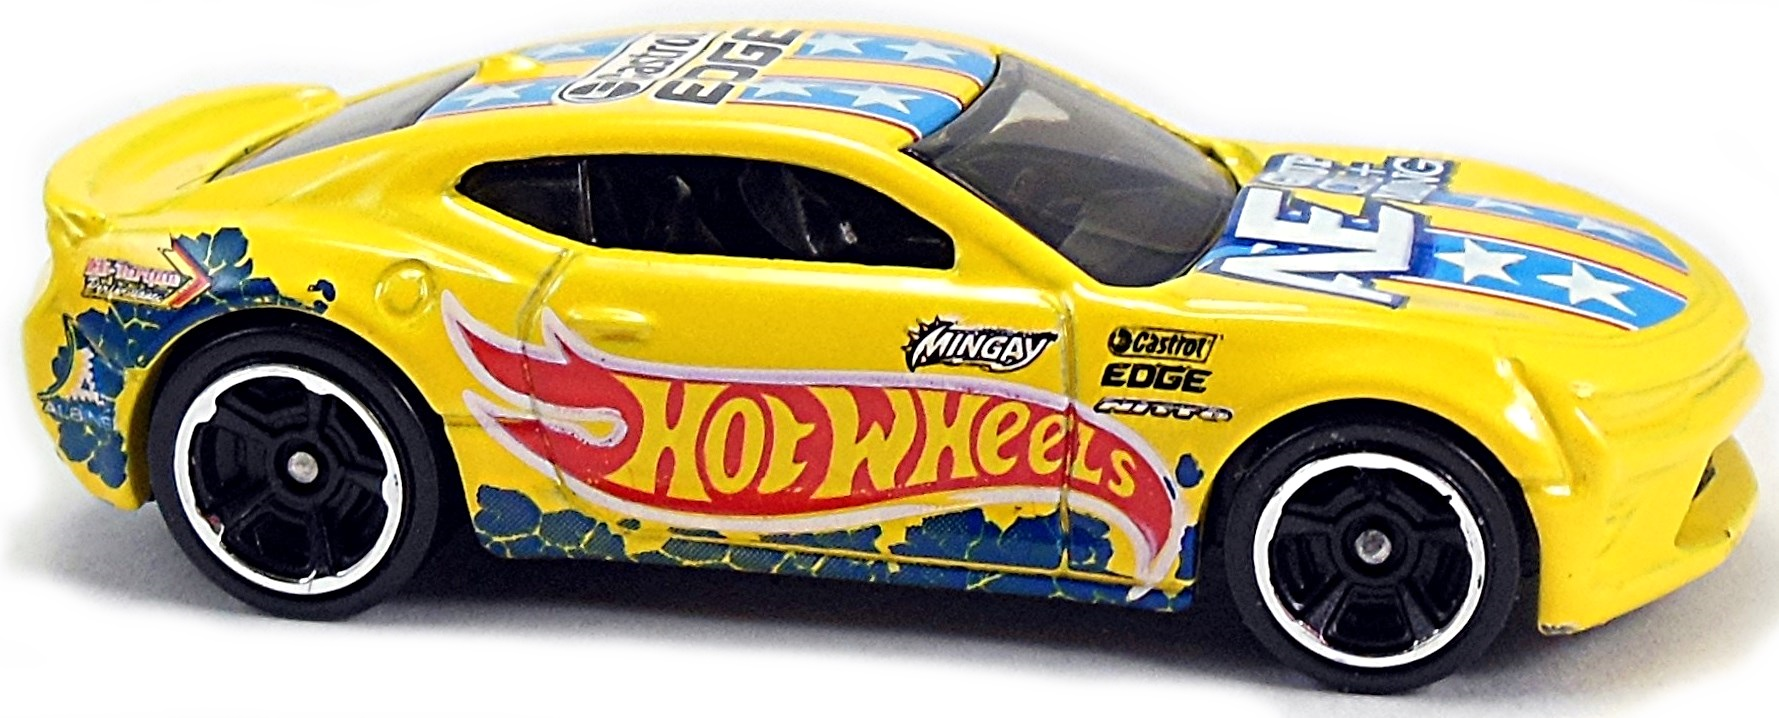 Mainline Exclusives | Hot Wheels Newsletter